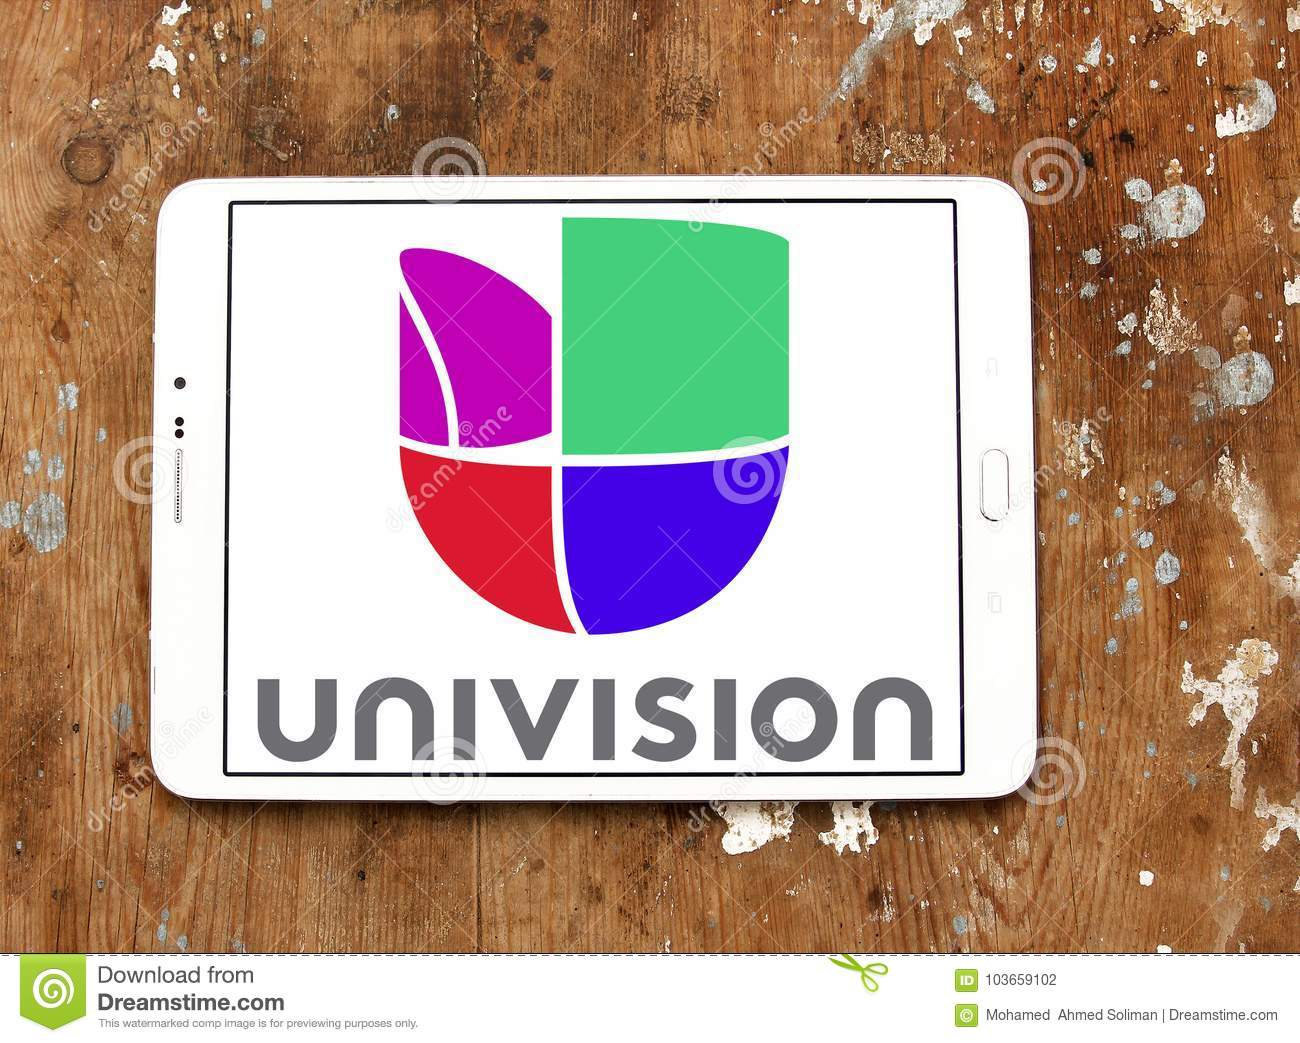 univision television network logo editorial photography - image of